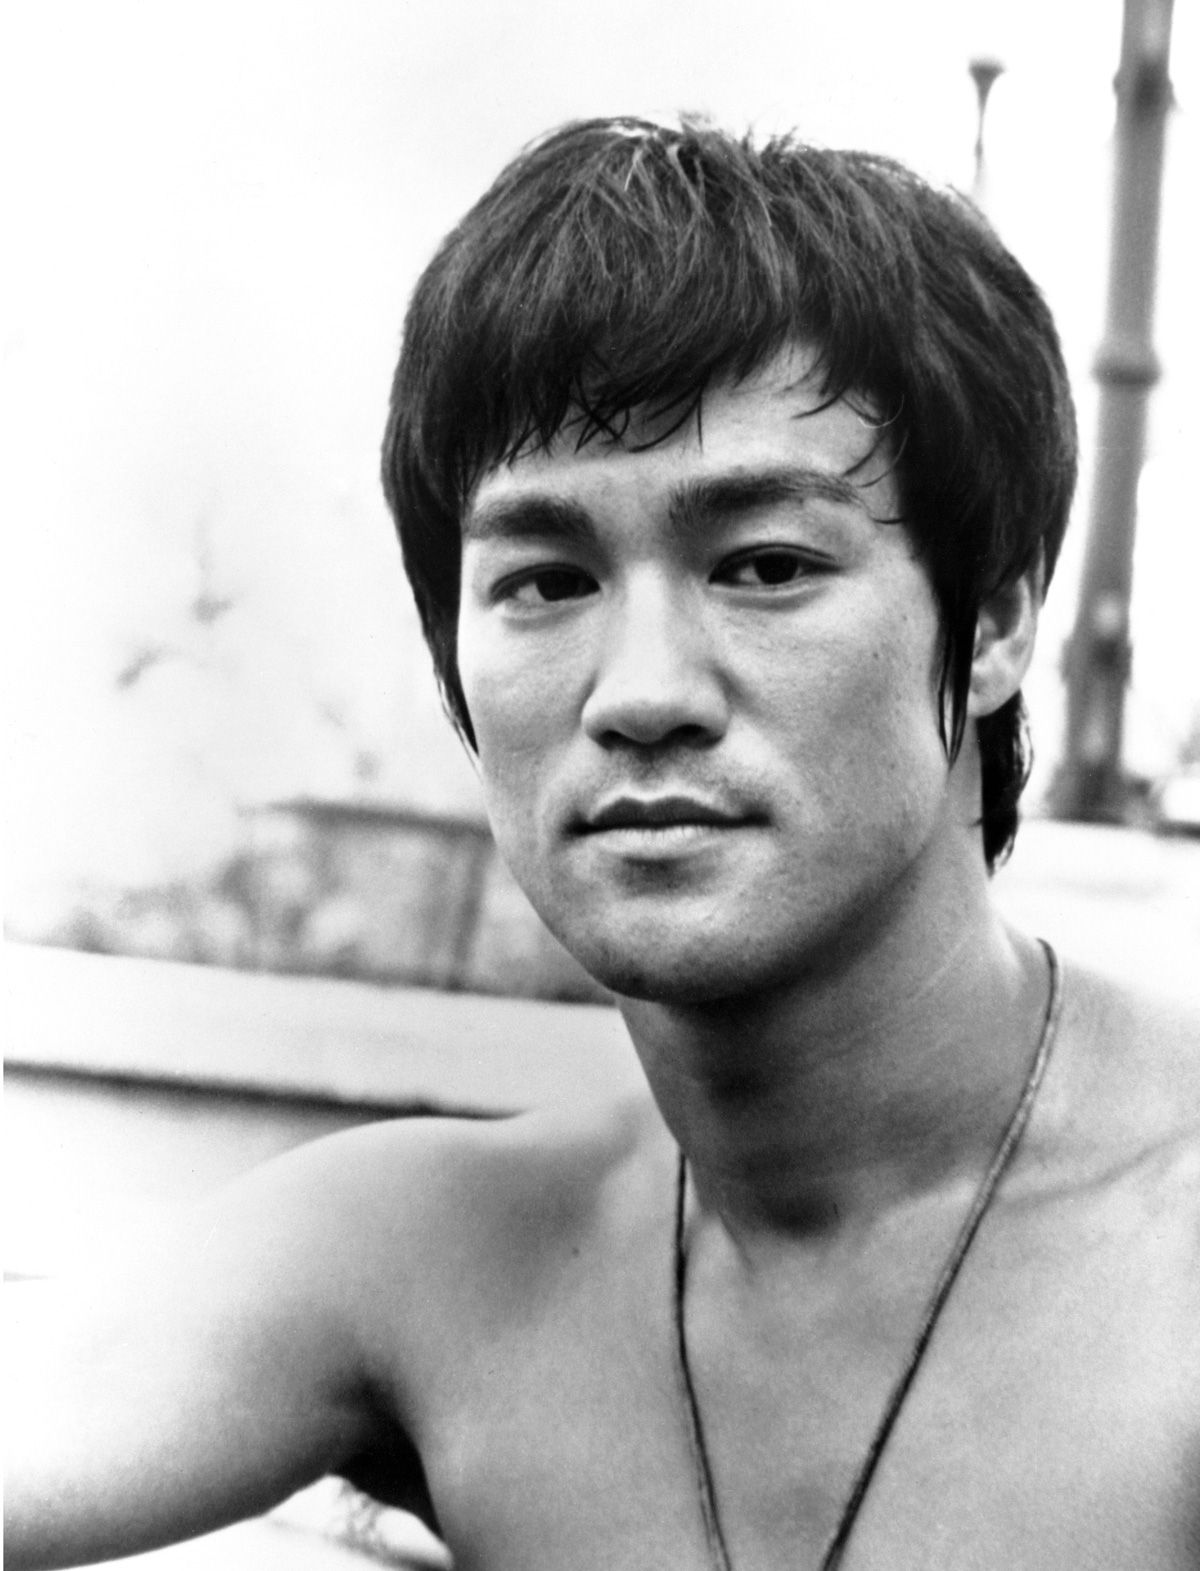 Bruce Lee's Never Before Revealed Letters to Himself About